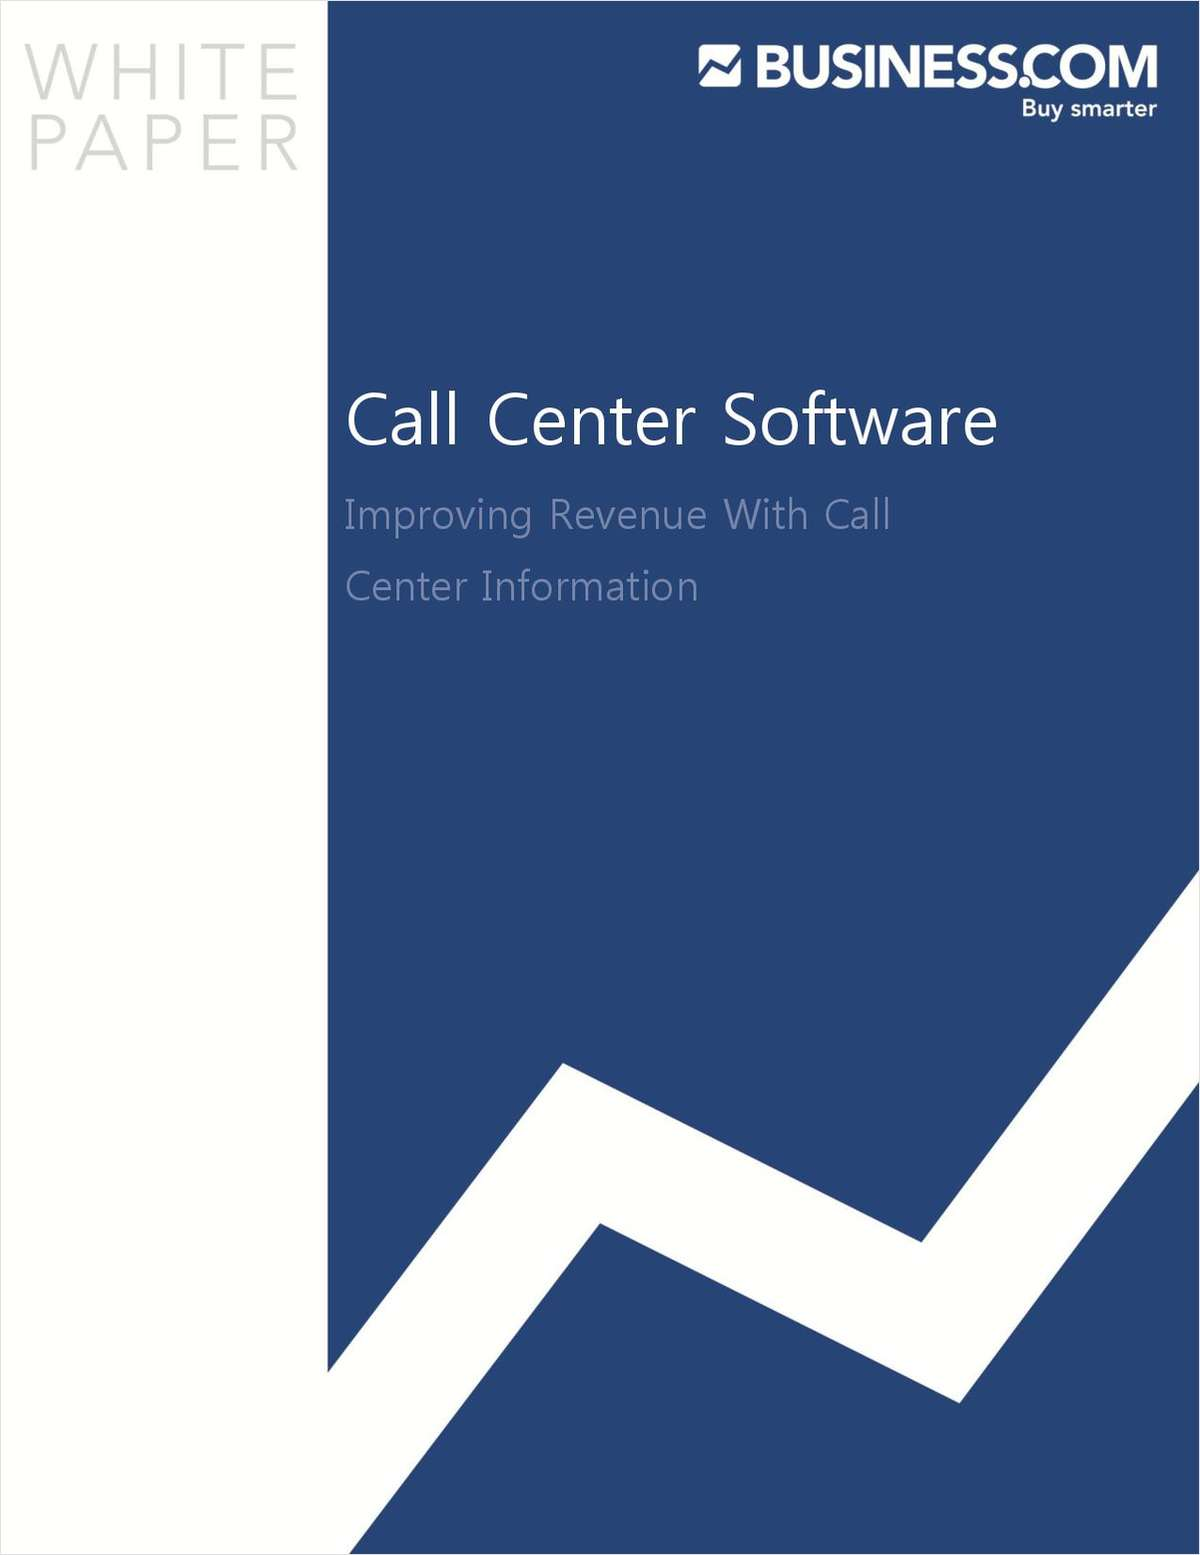 Call Center Software:  Improving Revenue With Call Center Information